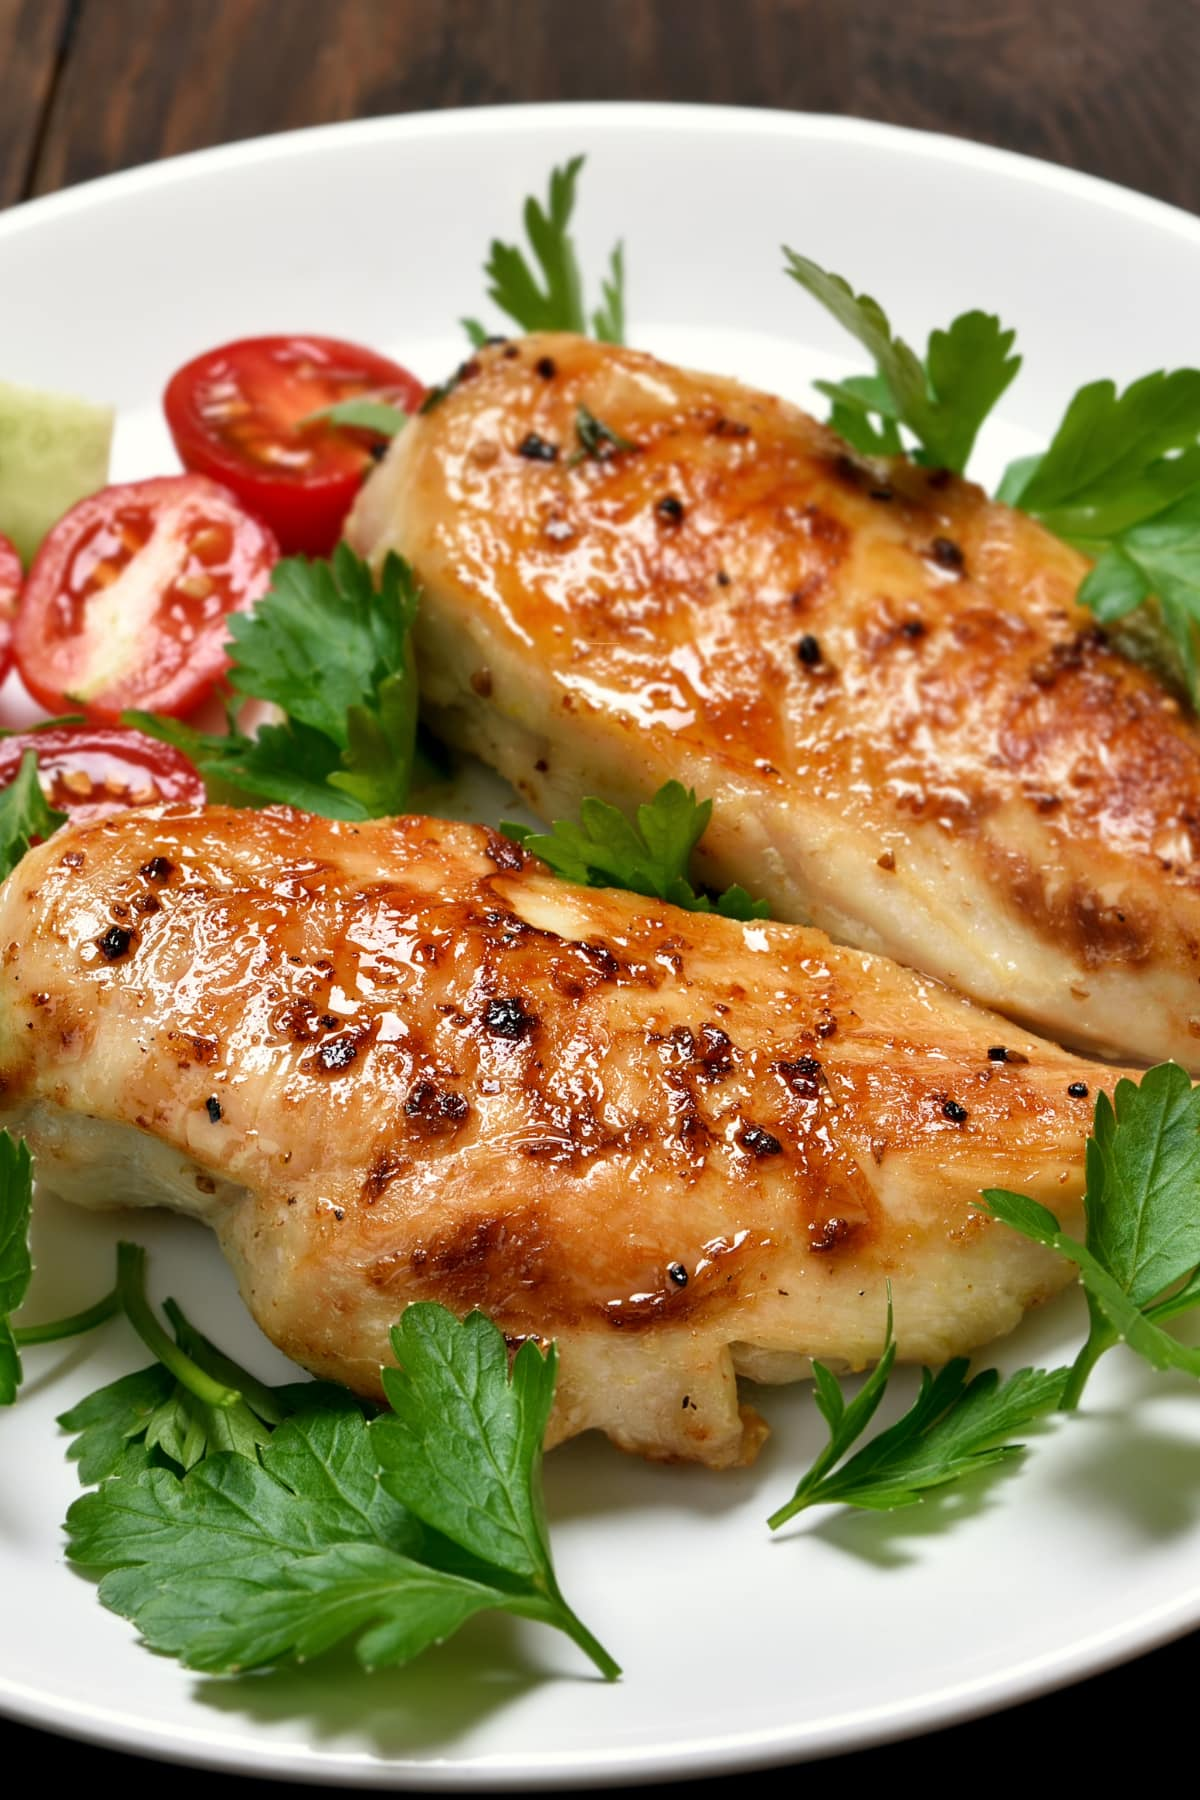 How to make a perfect baked chicken breast, juicy, full of flavor, with a delicious spice blend rub. Easy recipe for dinner